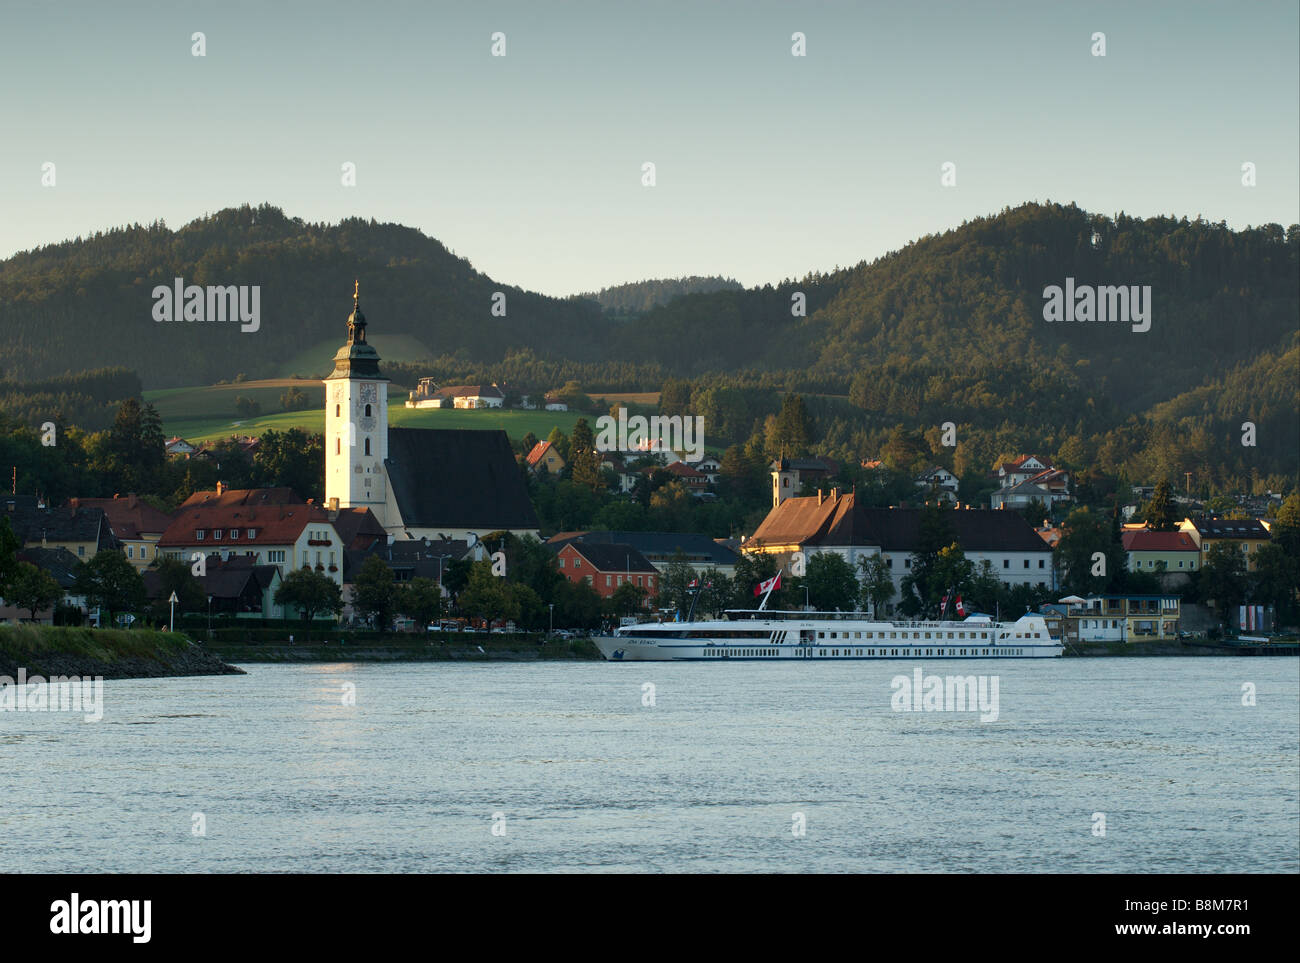 Sunset on the Danube - Stock Image